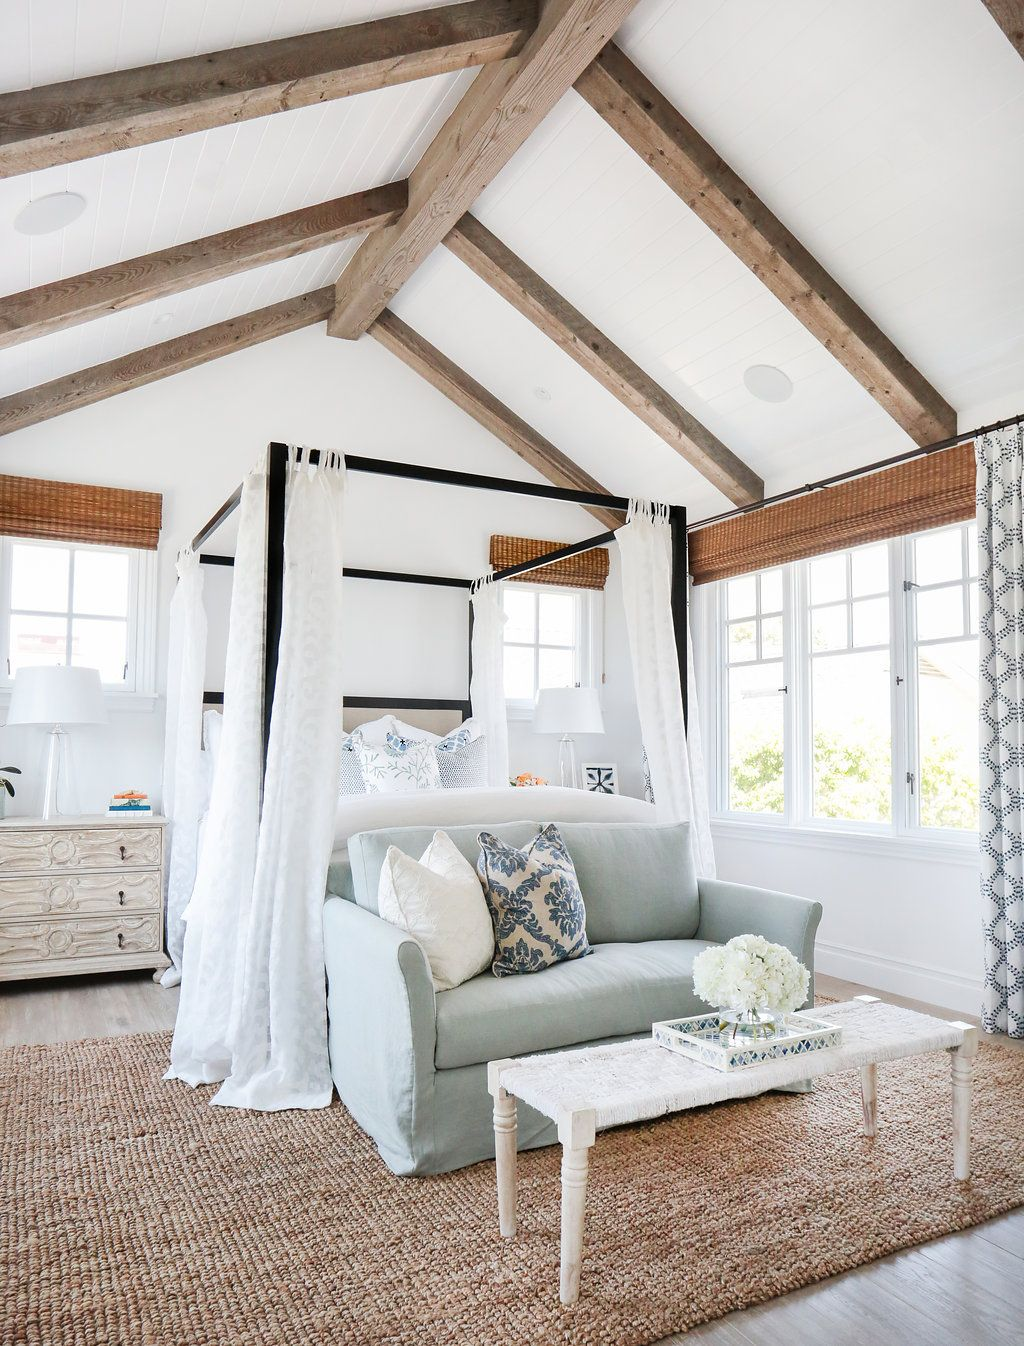 Bedroom with Vaulted Faux Wood Ceiling Beams via blackbanddesign